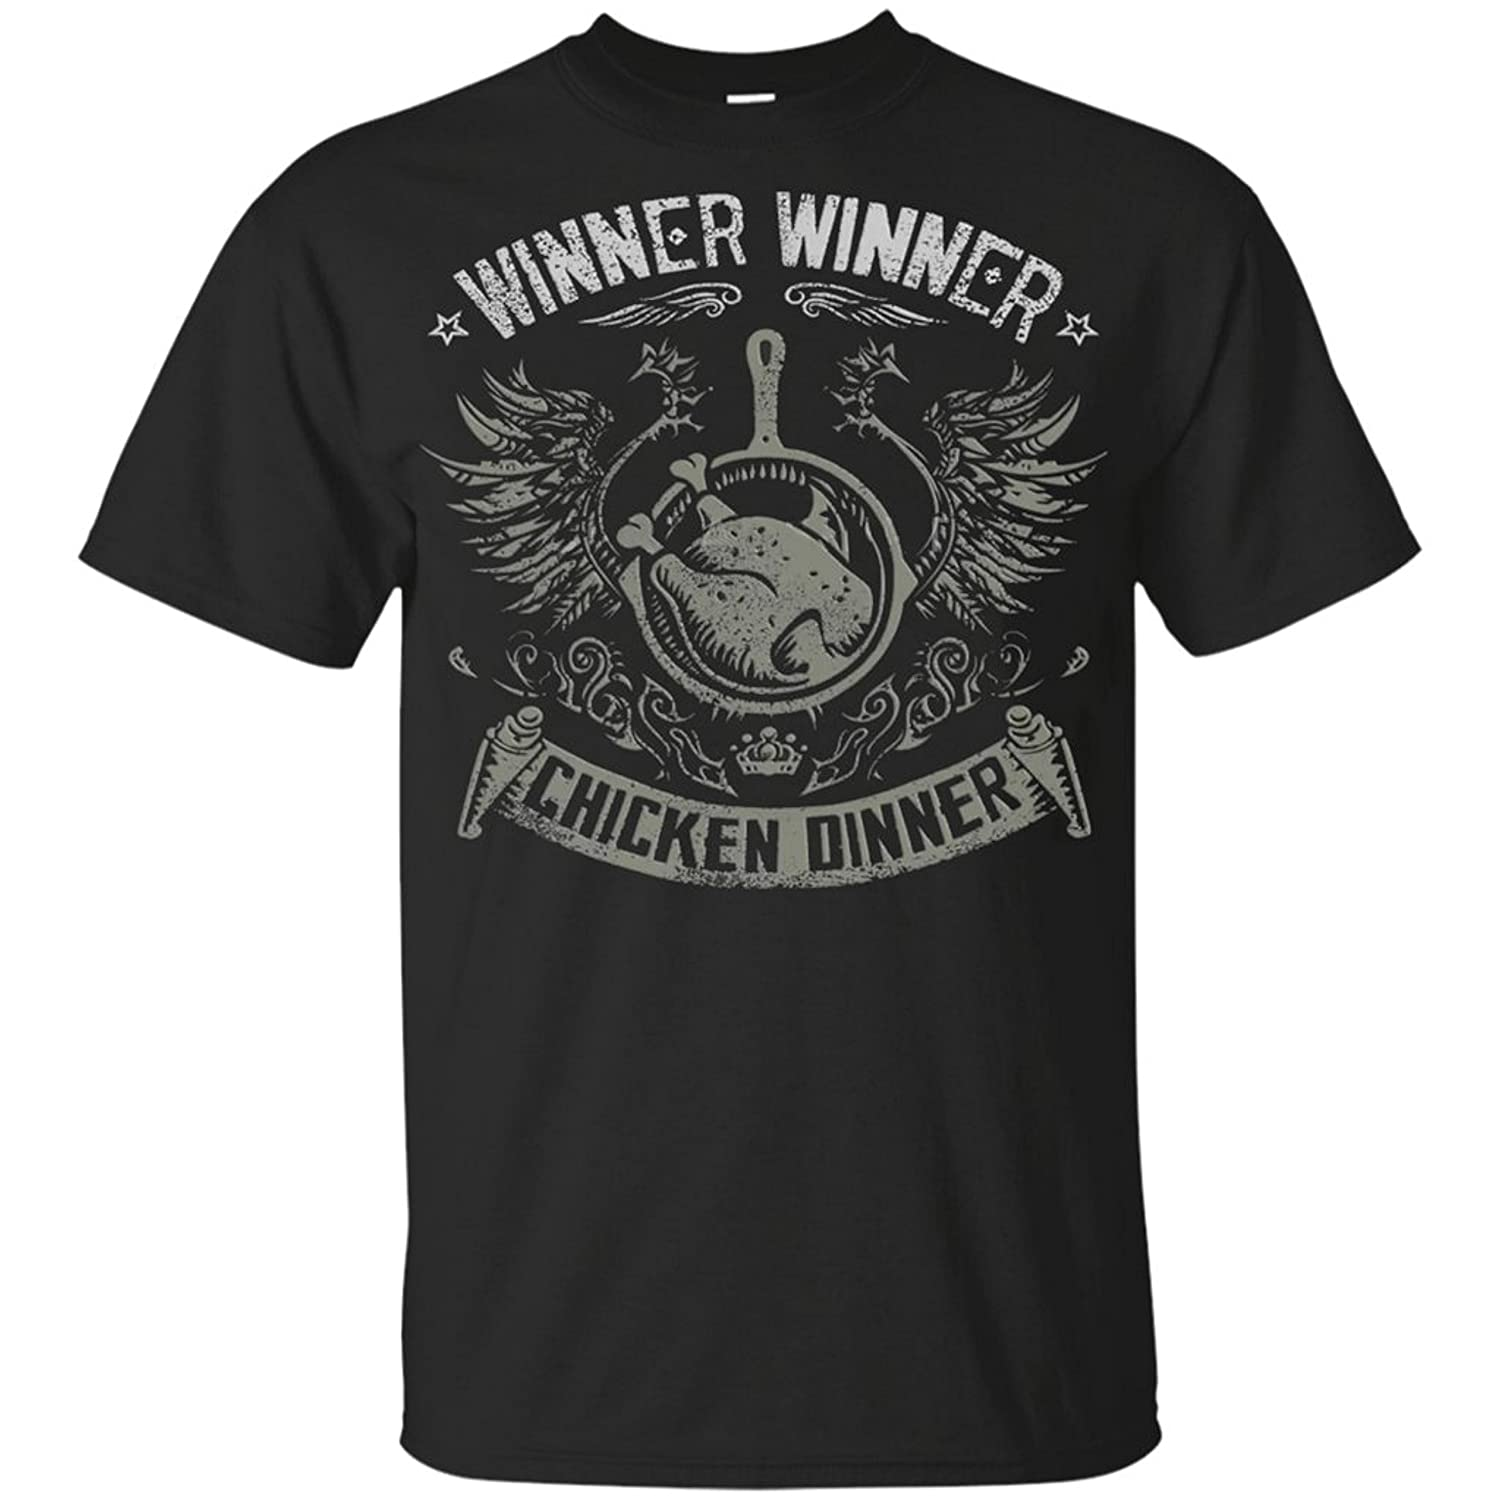 Winner Winner Chicken Dinner Pubg Mens Cotton T-Shirt